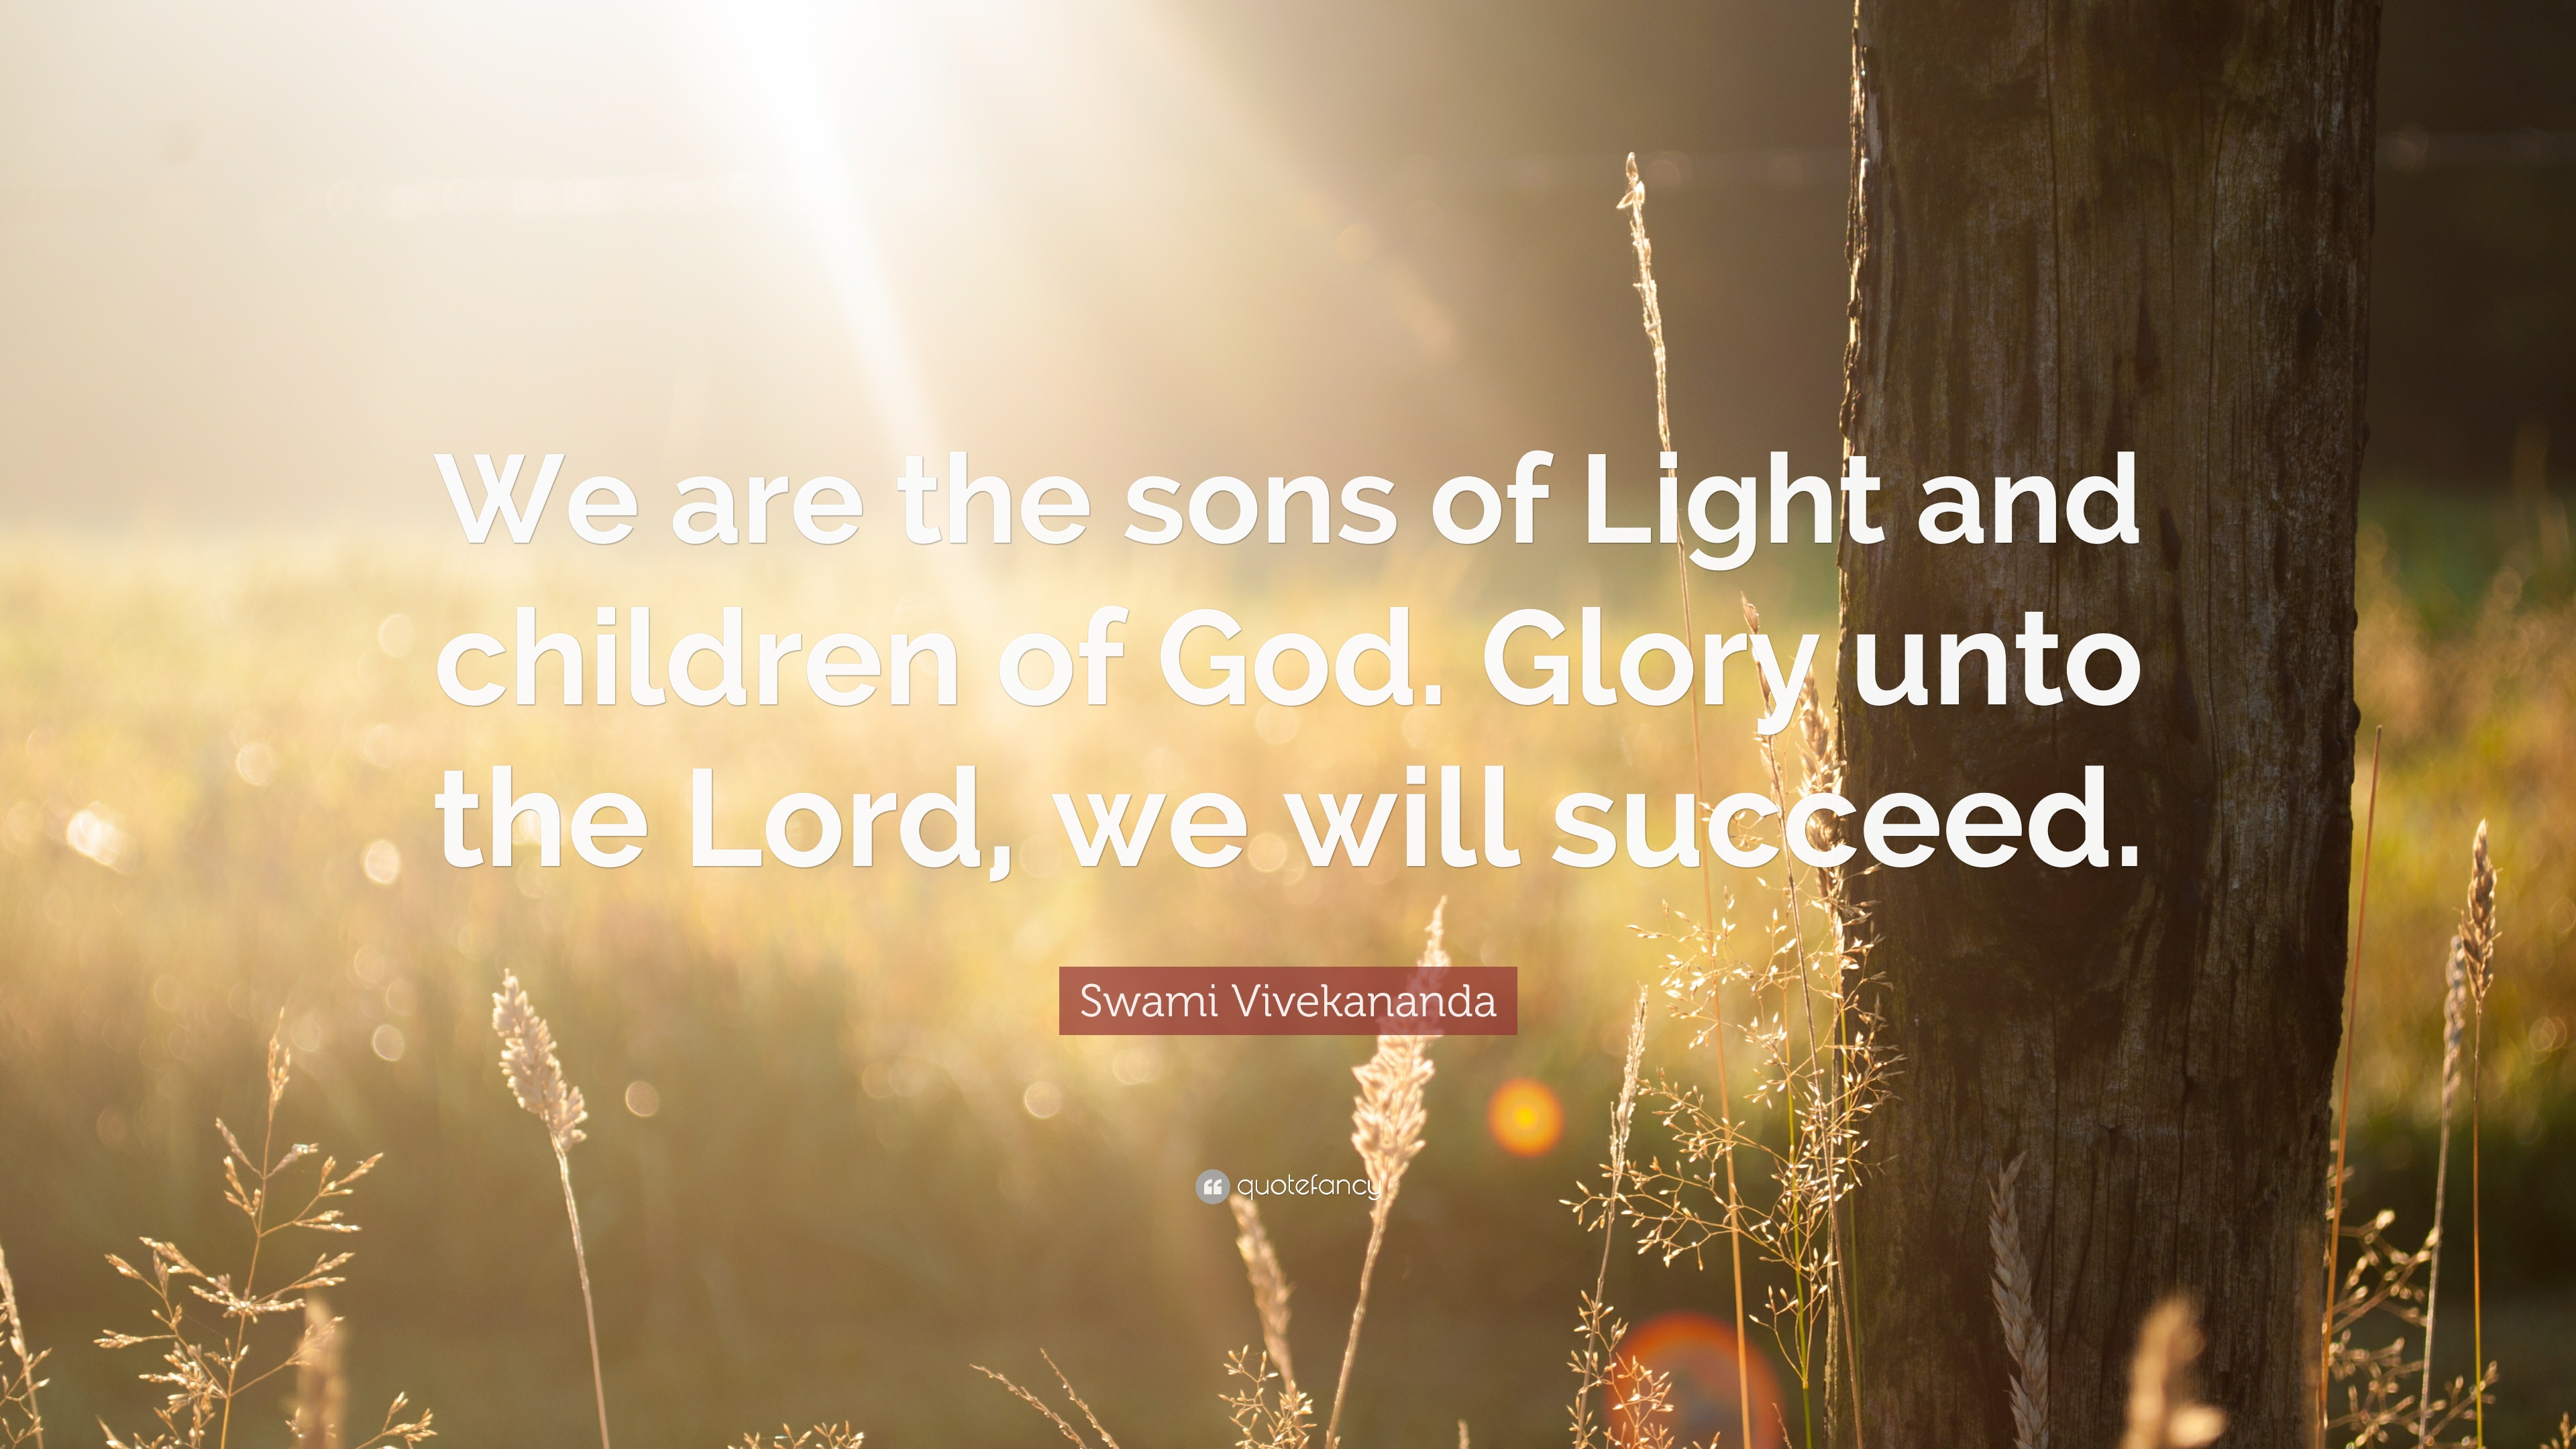 Beautiful Wallpaper Lord Light - 427206-Swami-Vivekananda-Quote-We-are-the-sons-of-Light-and-children-of  Pic_1001725.jpg